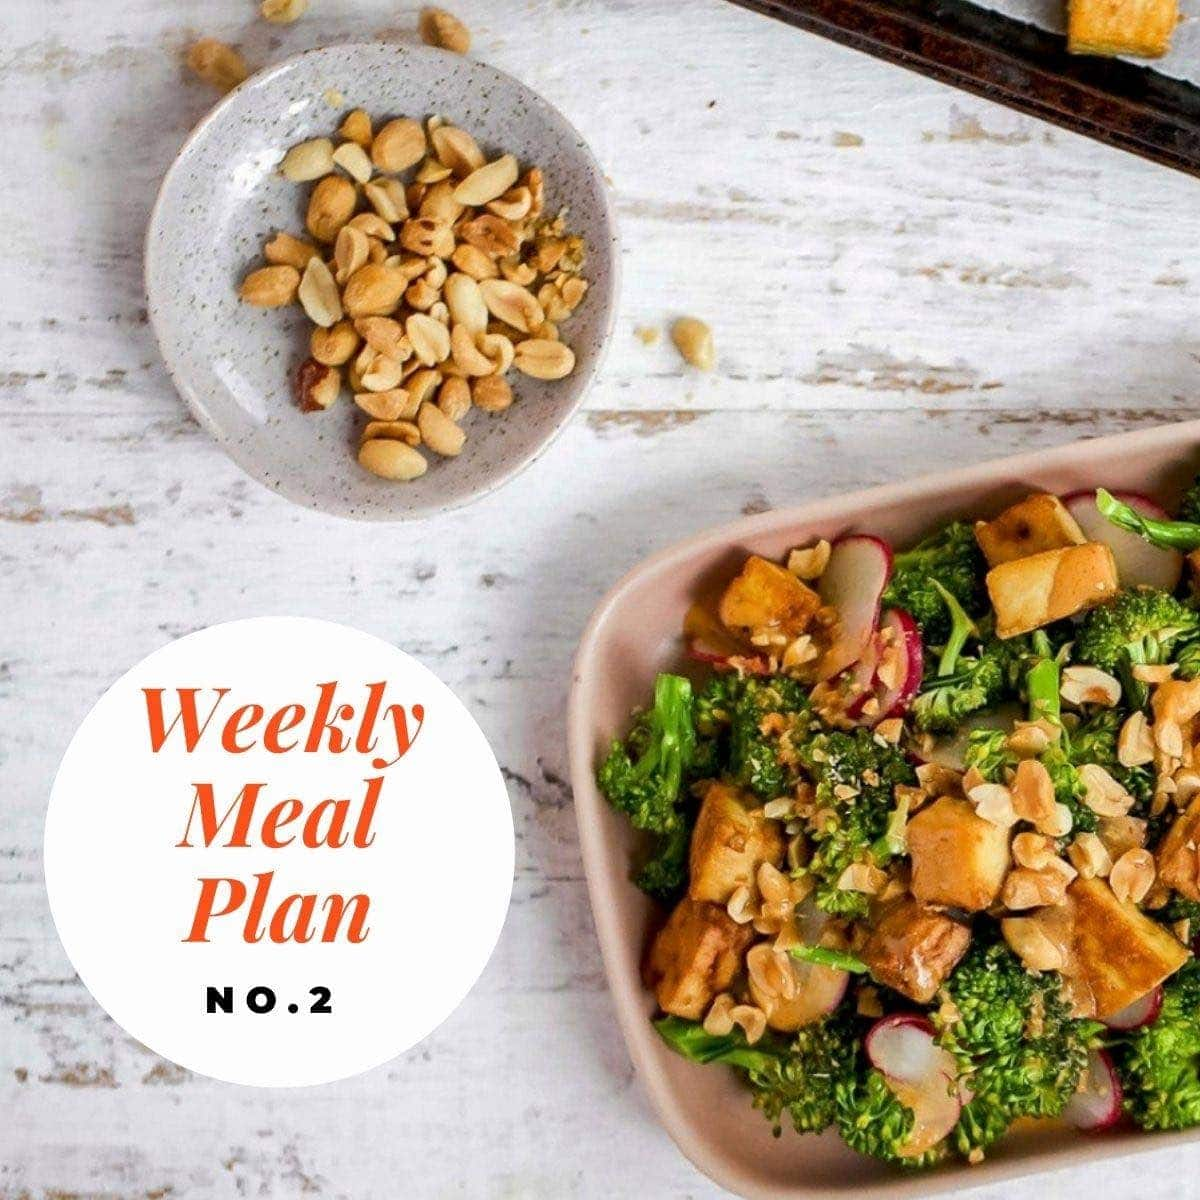 Broccoli peanut tofu salad in a pink sih on a white background and text overly-weekly meal plan no 2.